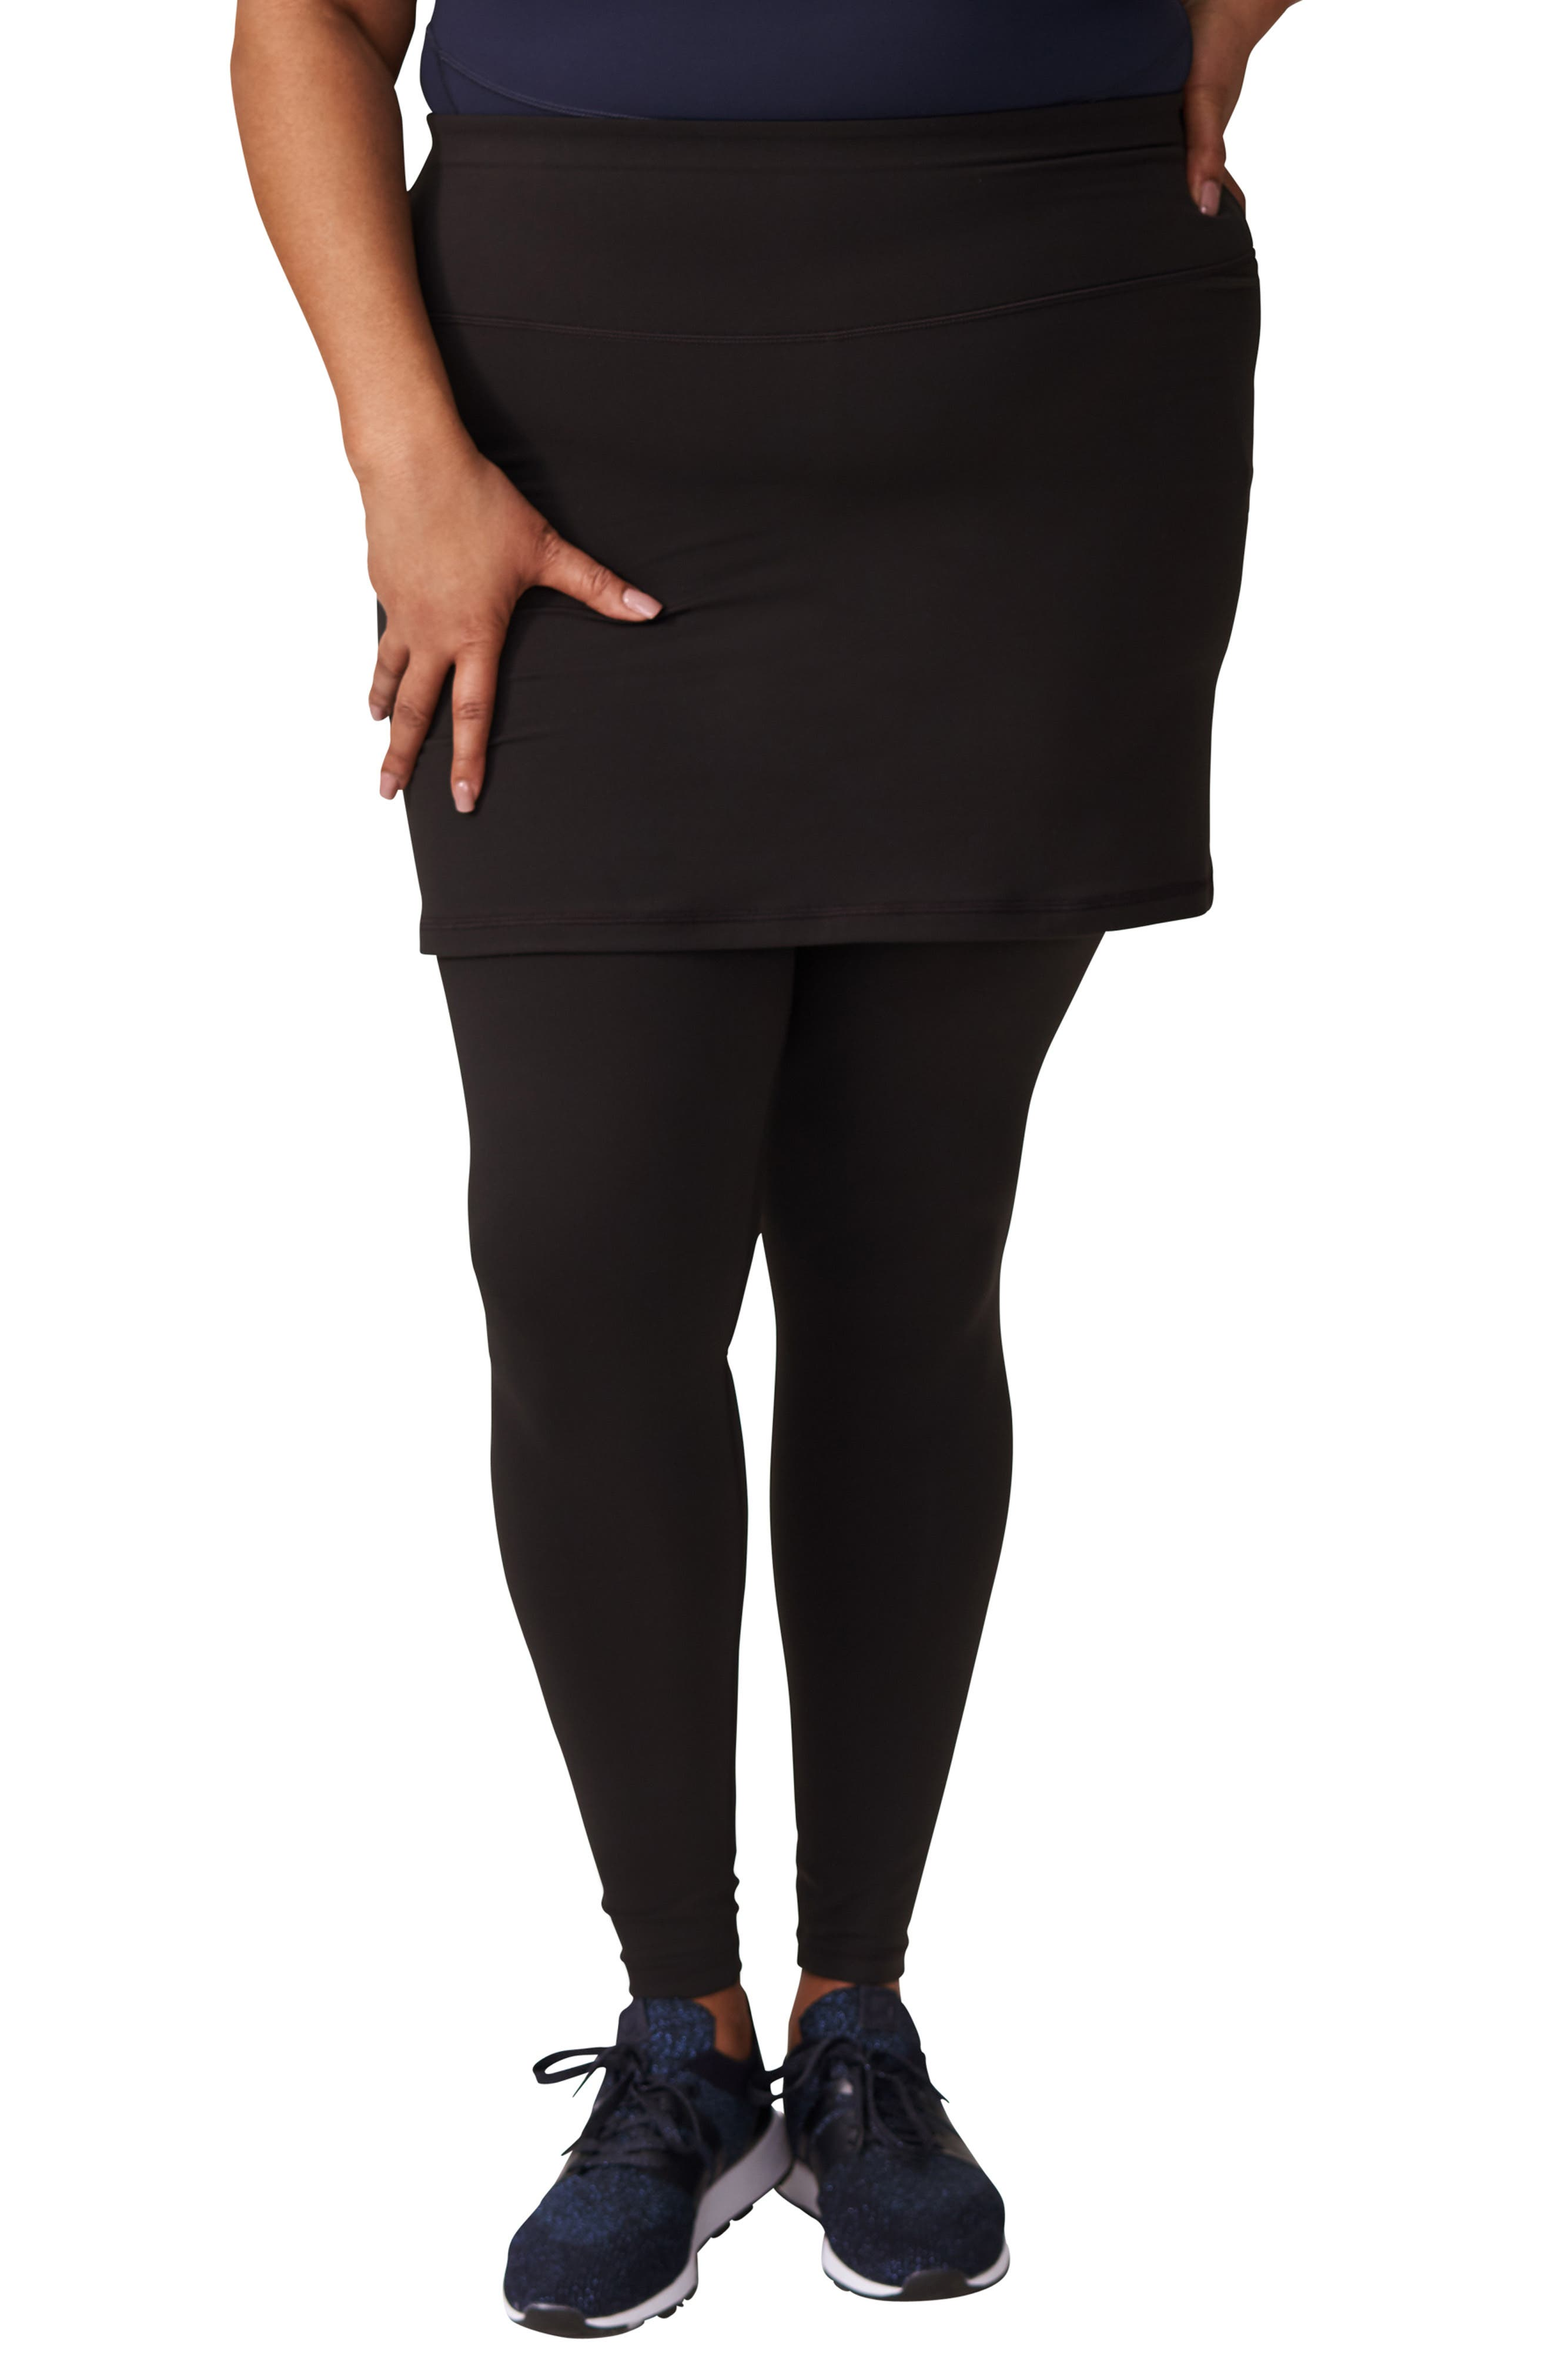 Plus Size Universal Standard Skirted Leggings, Size L (2-2) - Black